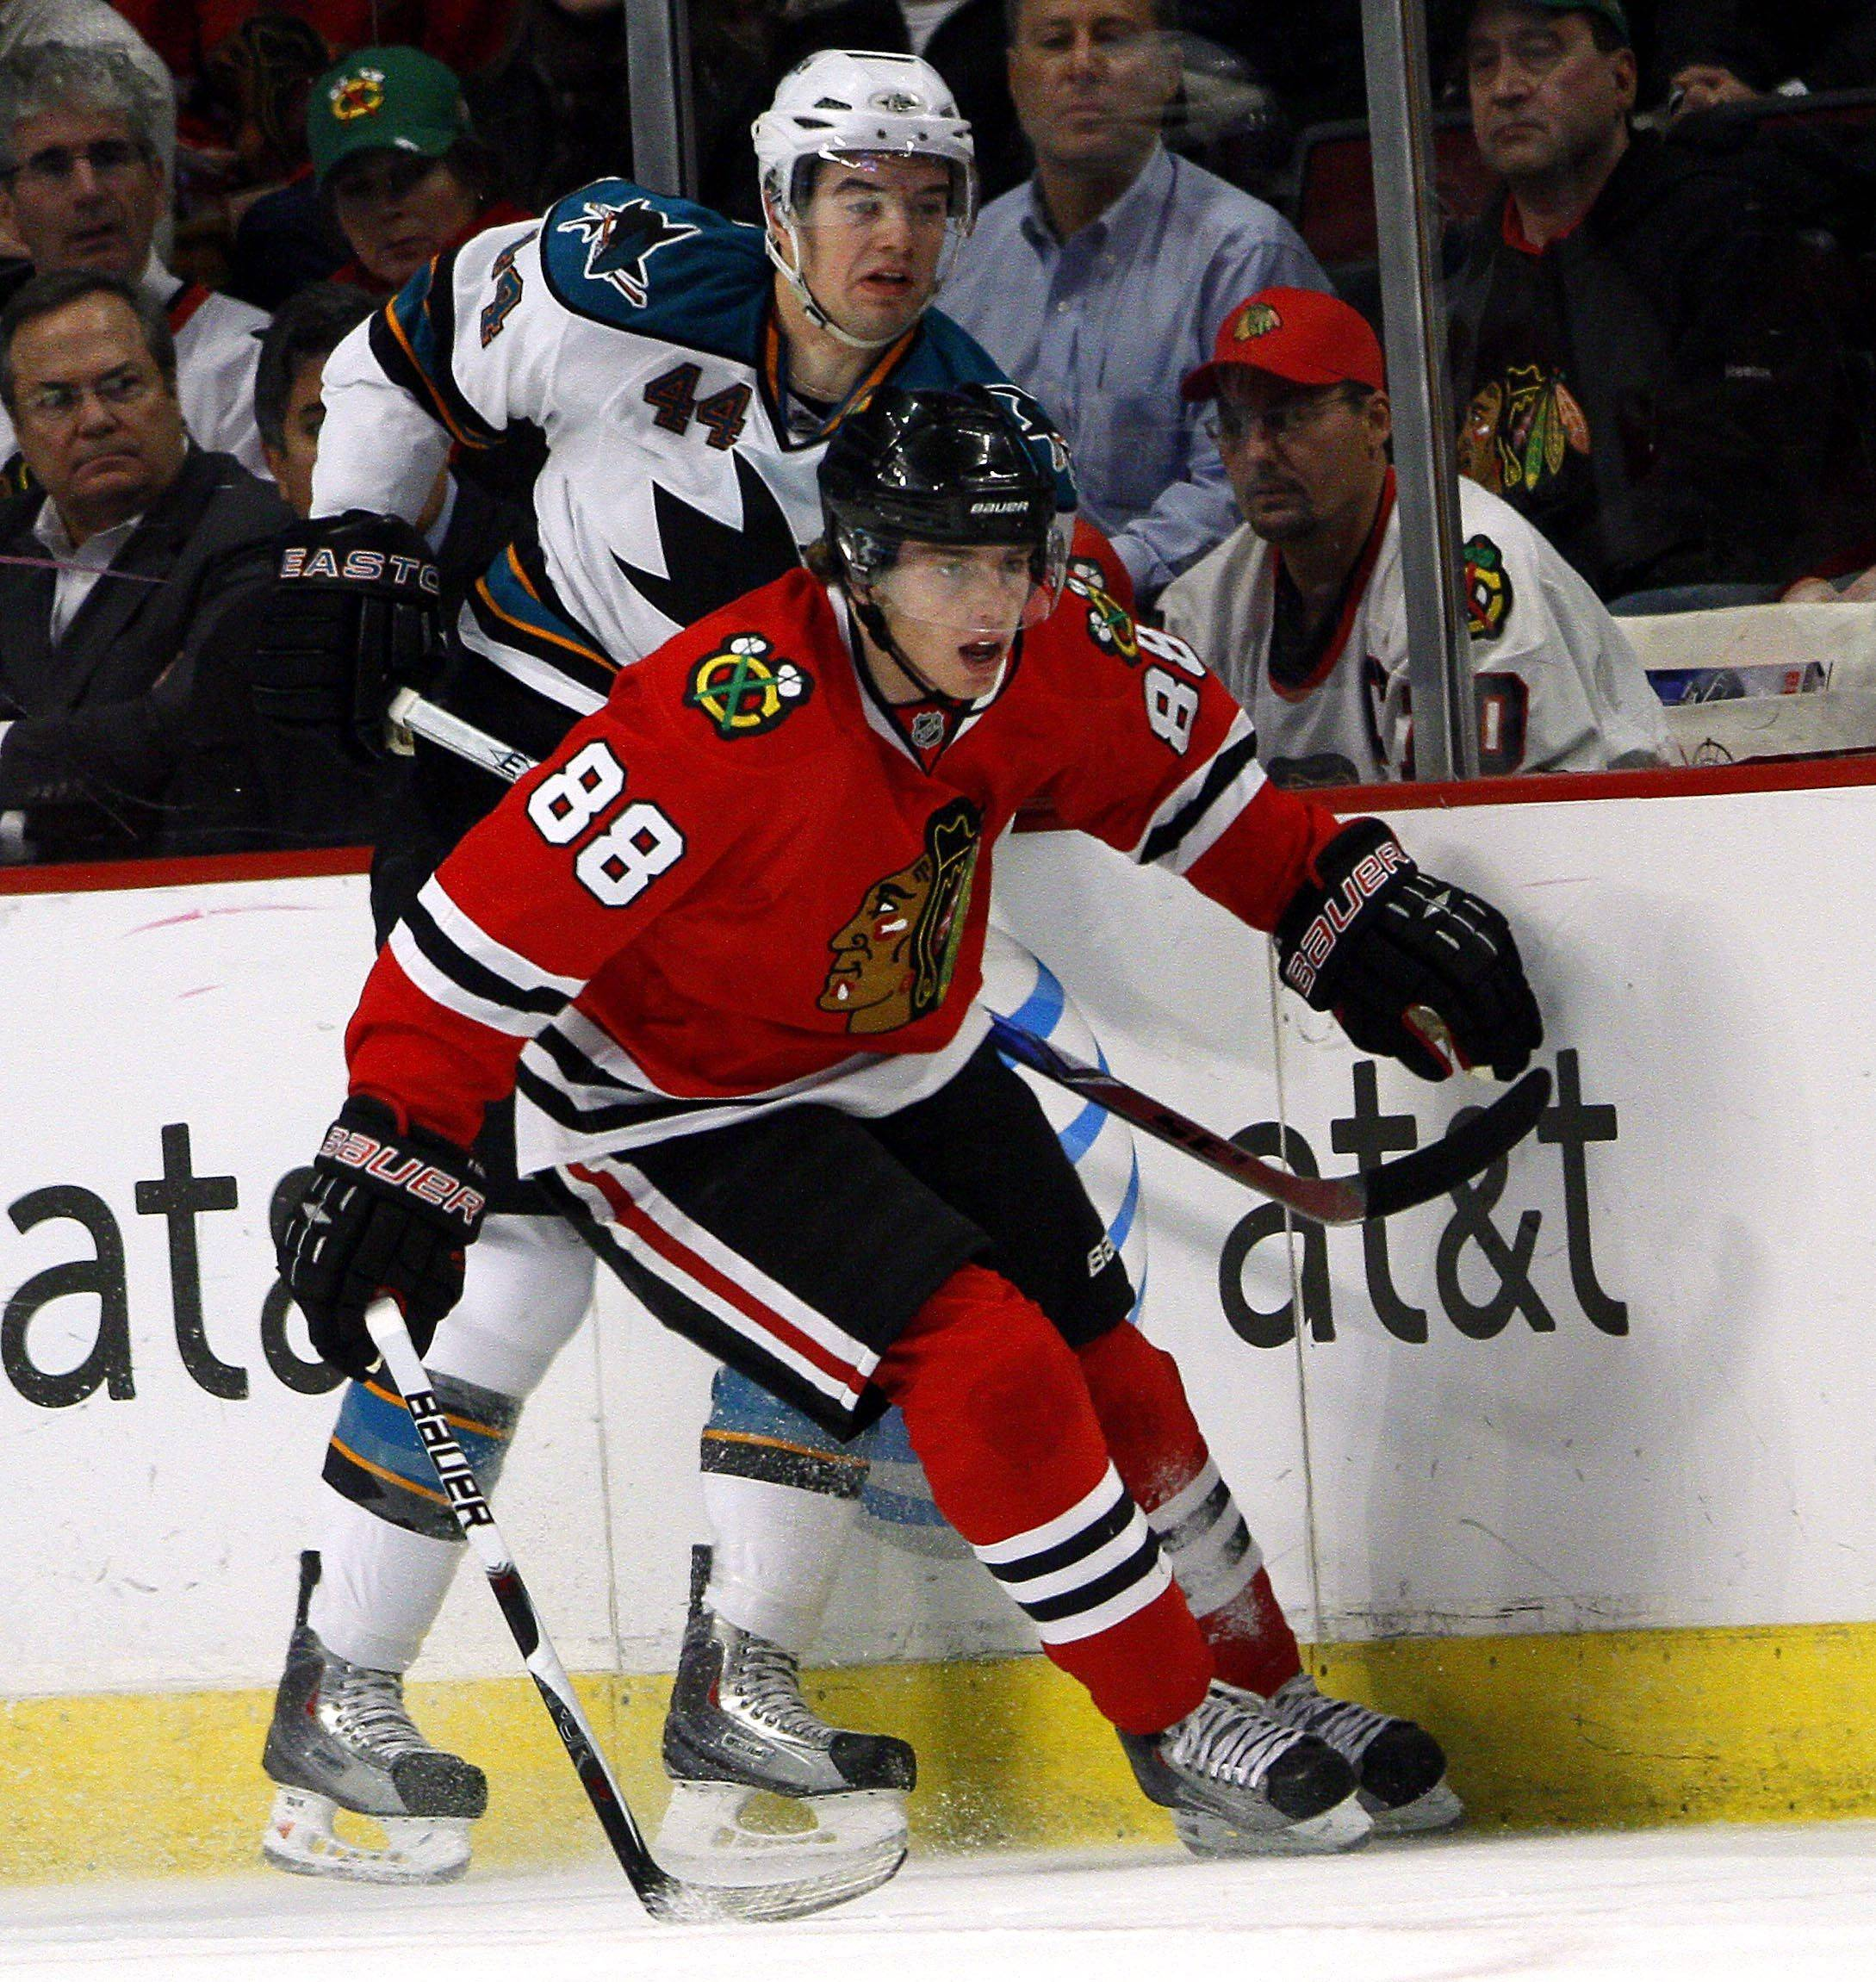 The Hawks' Patrick Kane, skating in front of San Jose's Marc-Edouard Vlasic in the first period Monday night, scored his 100th career goal in the victory.